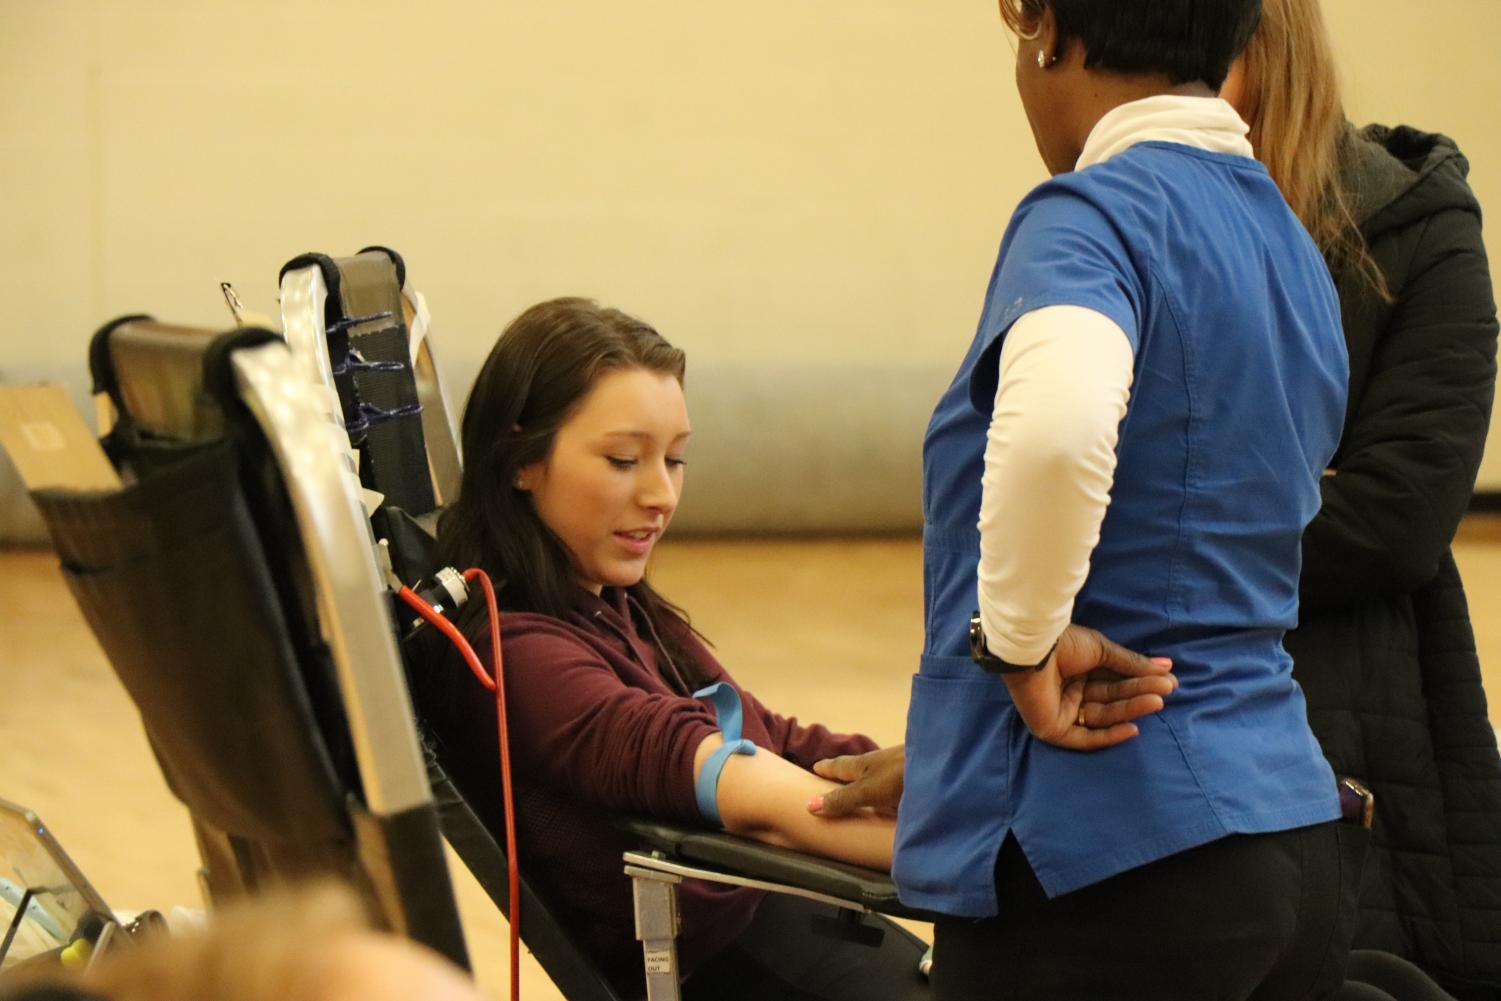 Waiting for instruction from the professionals, junior Ryleigh Malinowski gets ready to give blood. Every year Fenton High participates in multiple blood drives throughout the year to make an effort to save lives.